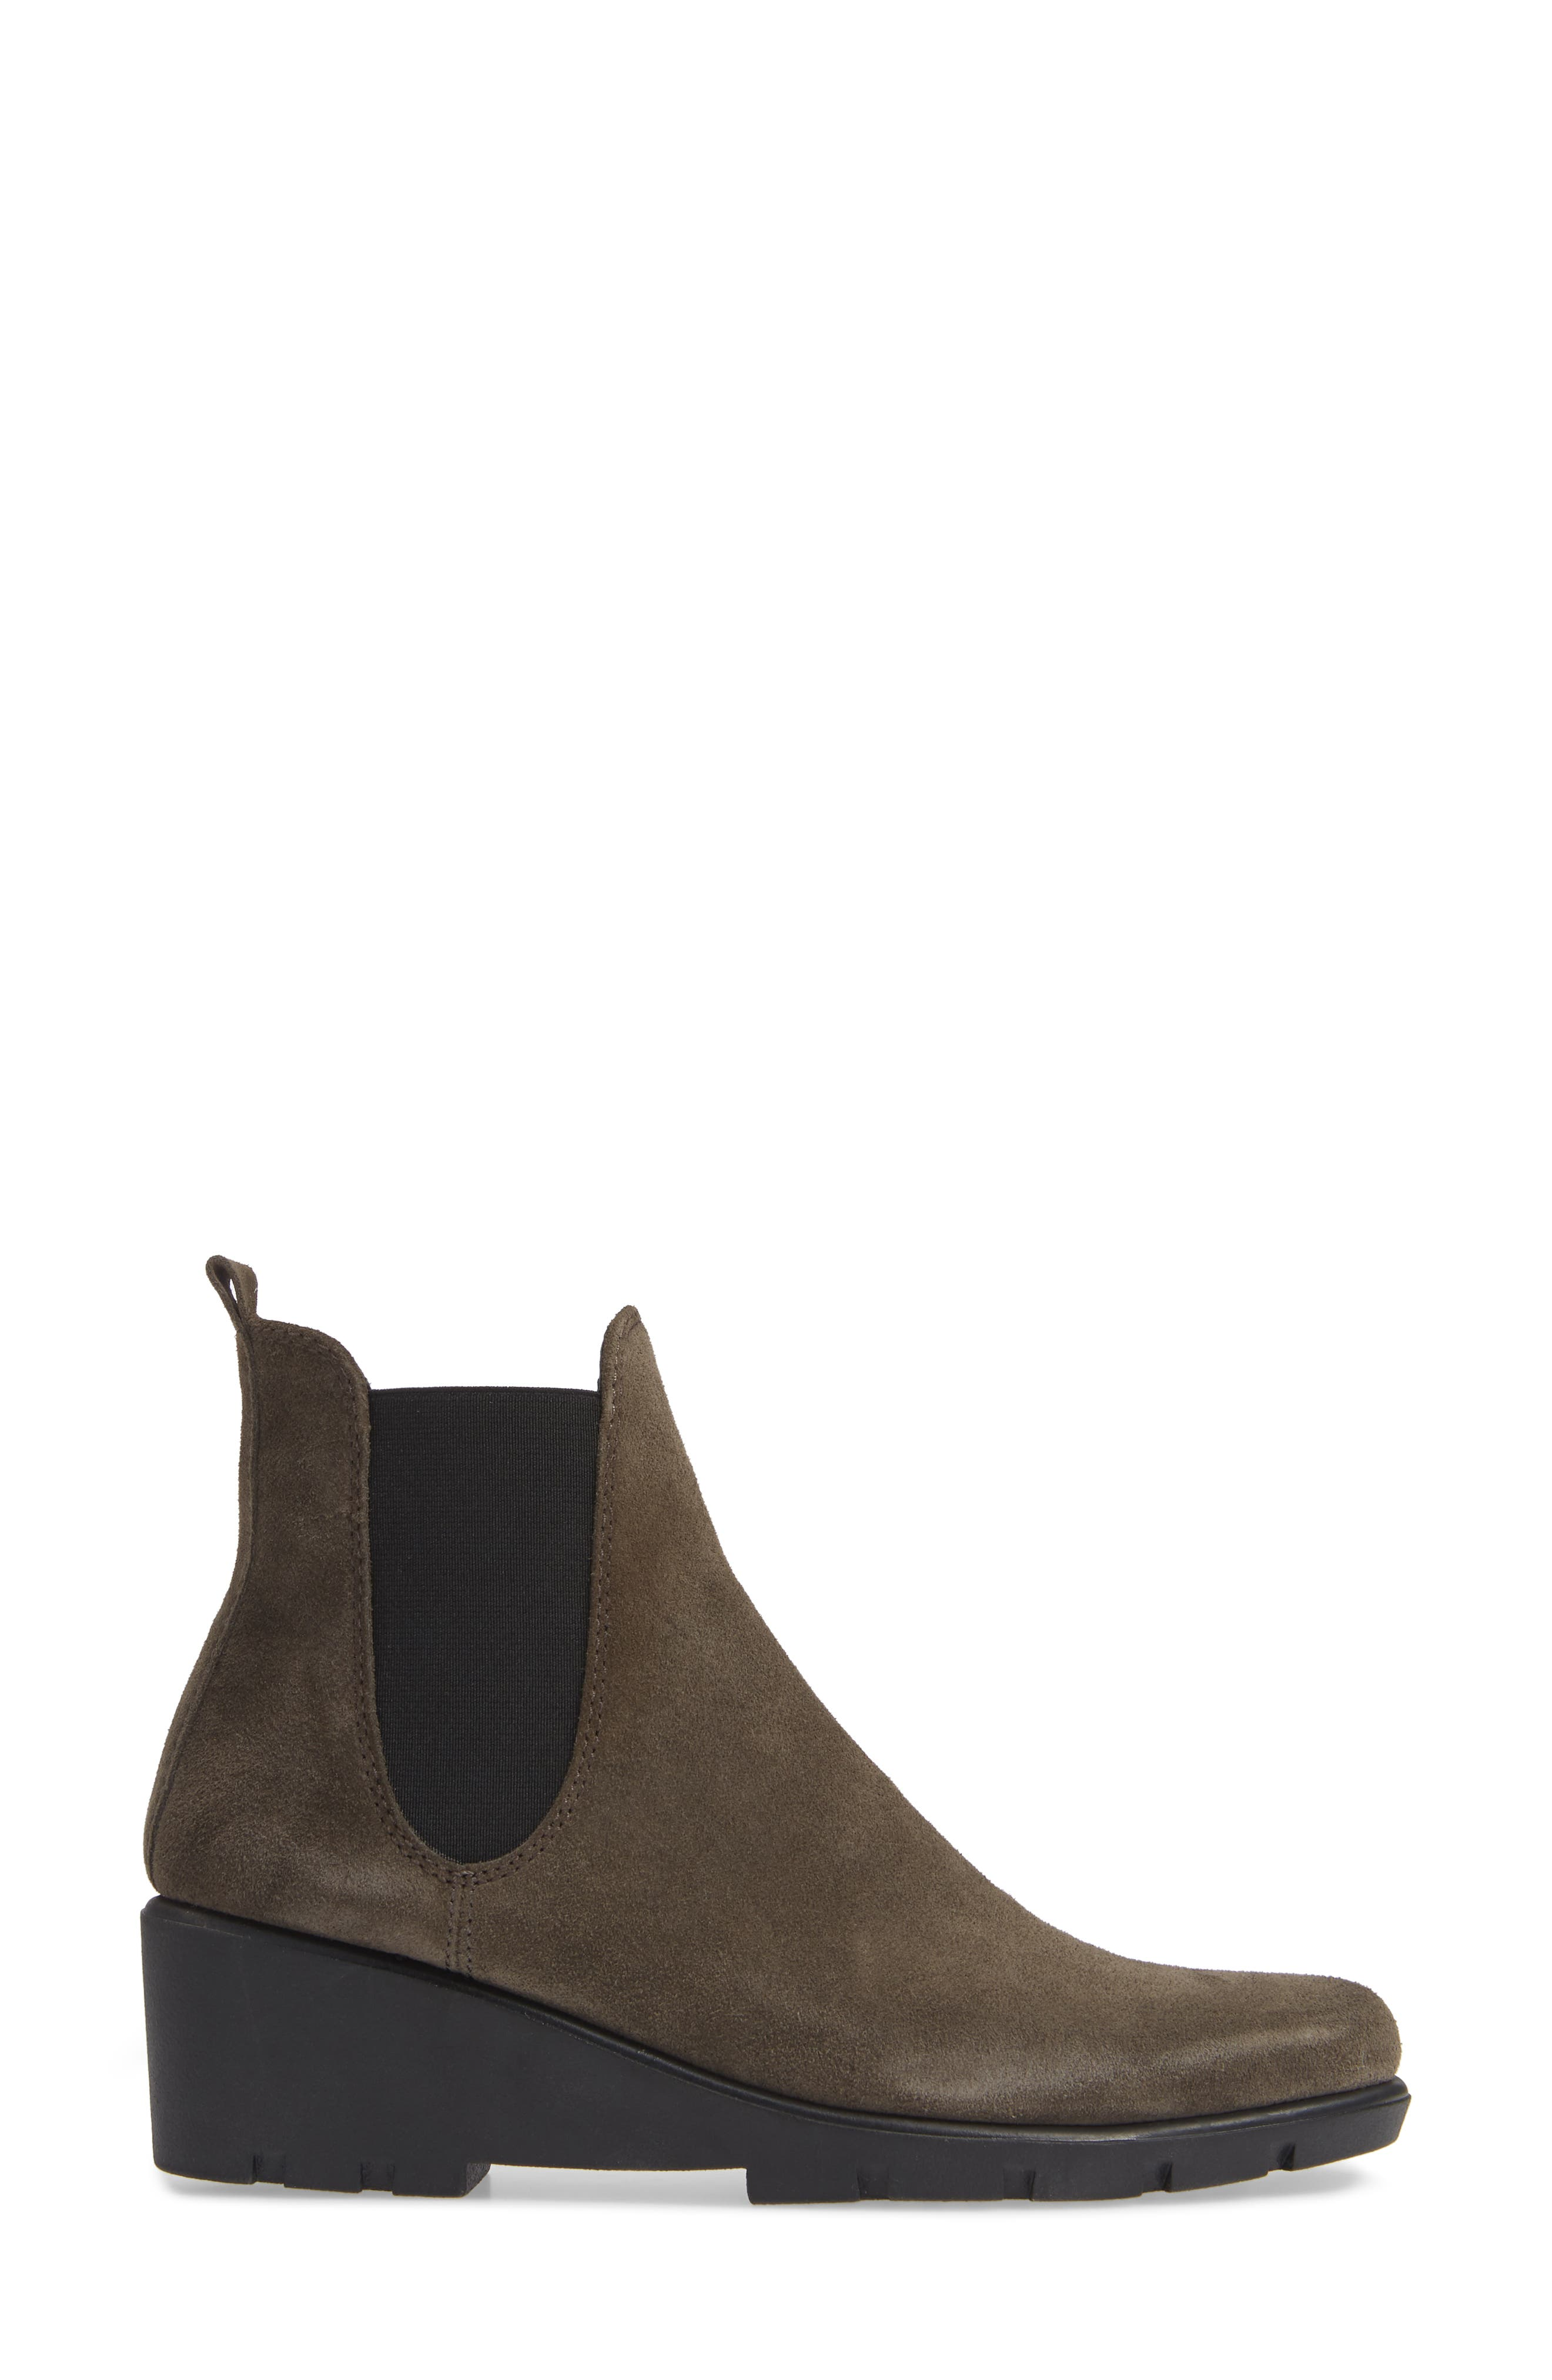 THE FLEXX, Slimmer Chelsea Wedge Boot, Alternate thumbnail 3, color, BROWN SUEDE